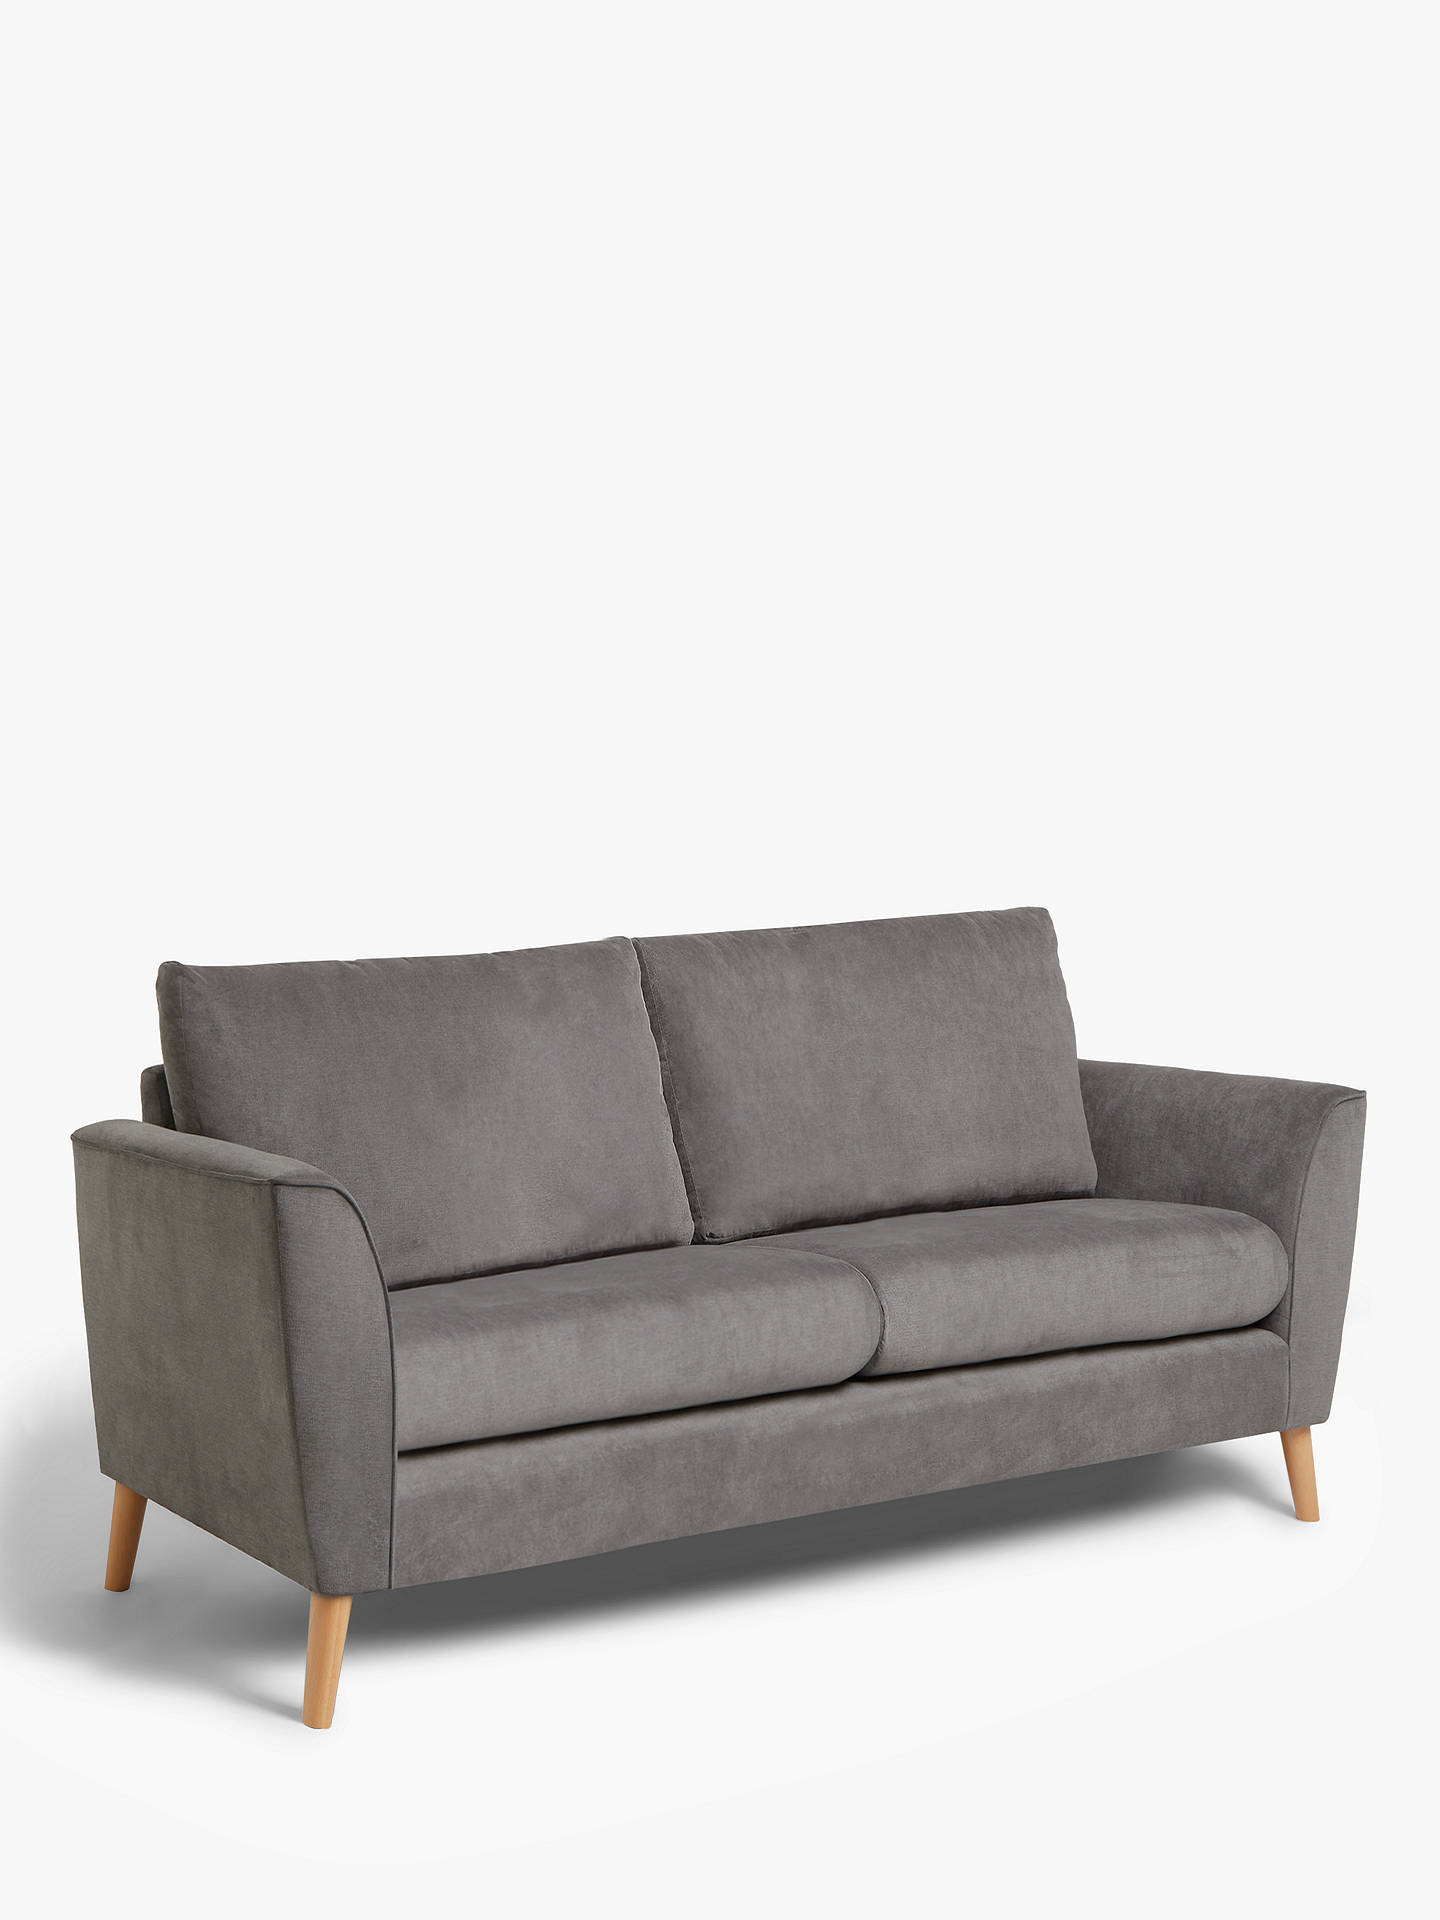 Flare Small 2 Seater Sofa Light Leg